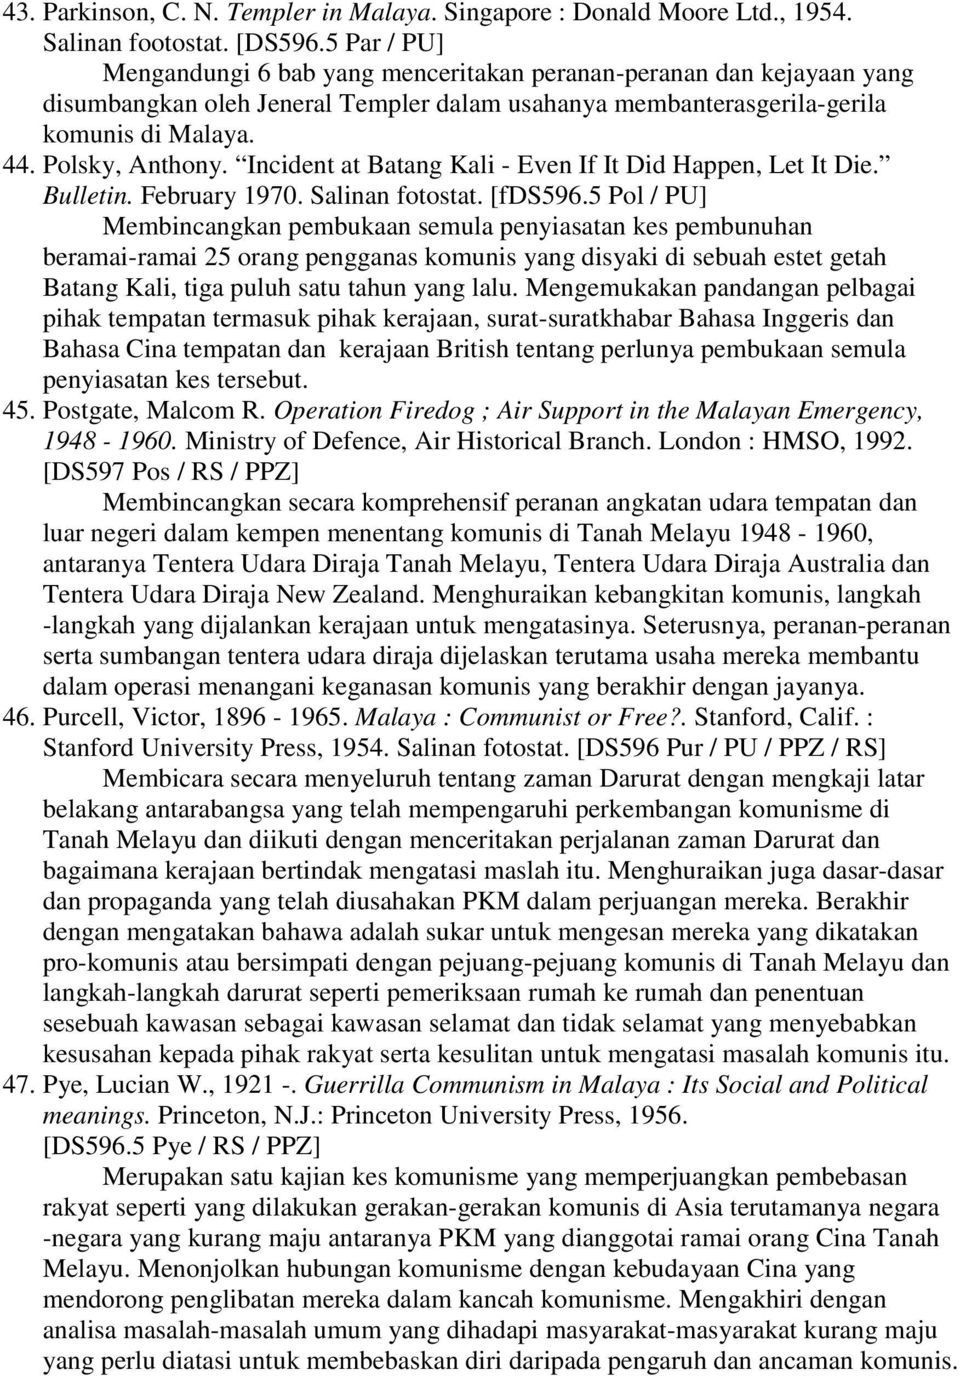 Incident at Batang Kali - Even If It Did Happen, Let It Die. Bulletin. February 1970. Salinan fotostat. [fds596.